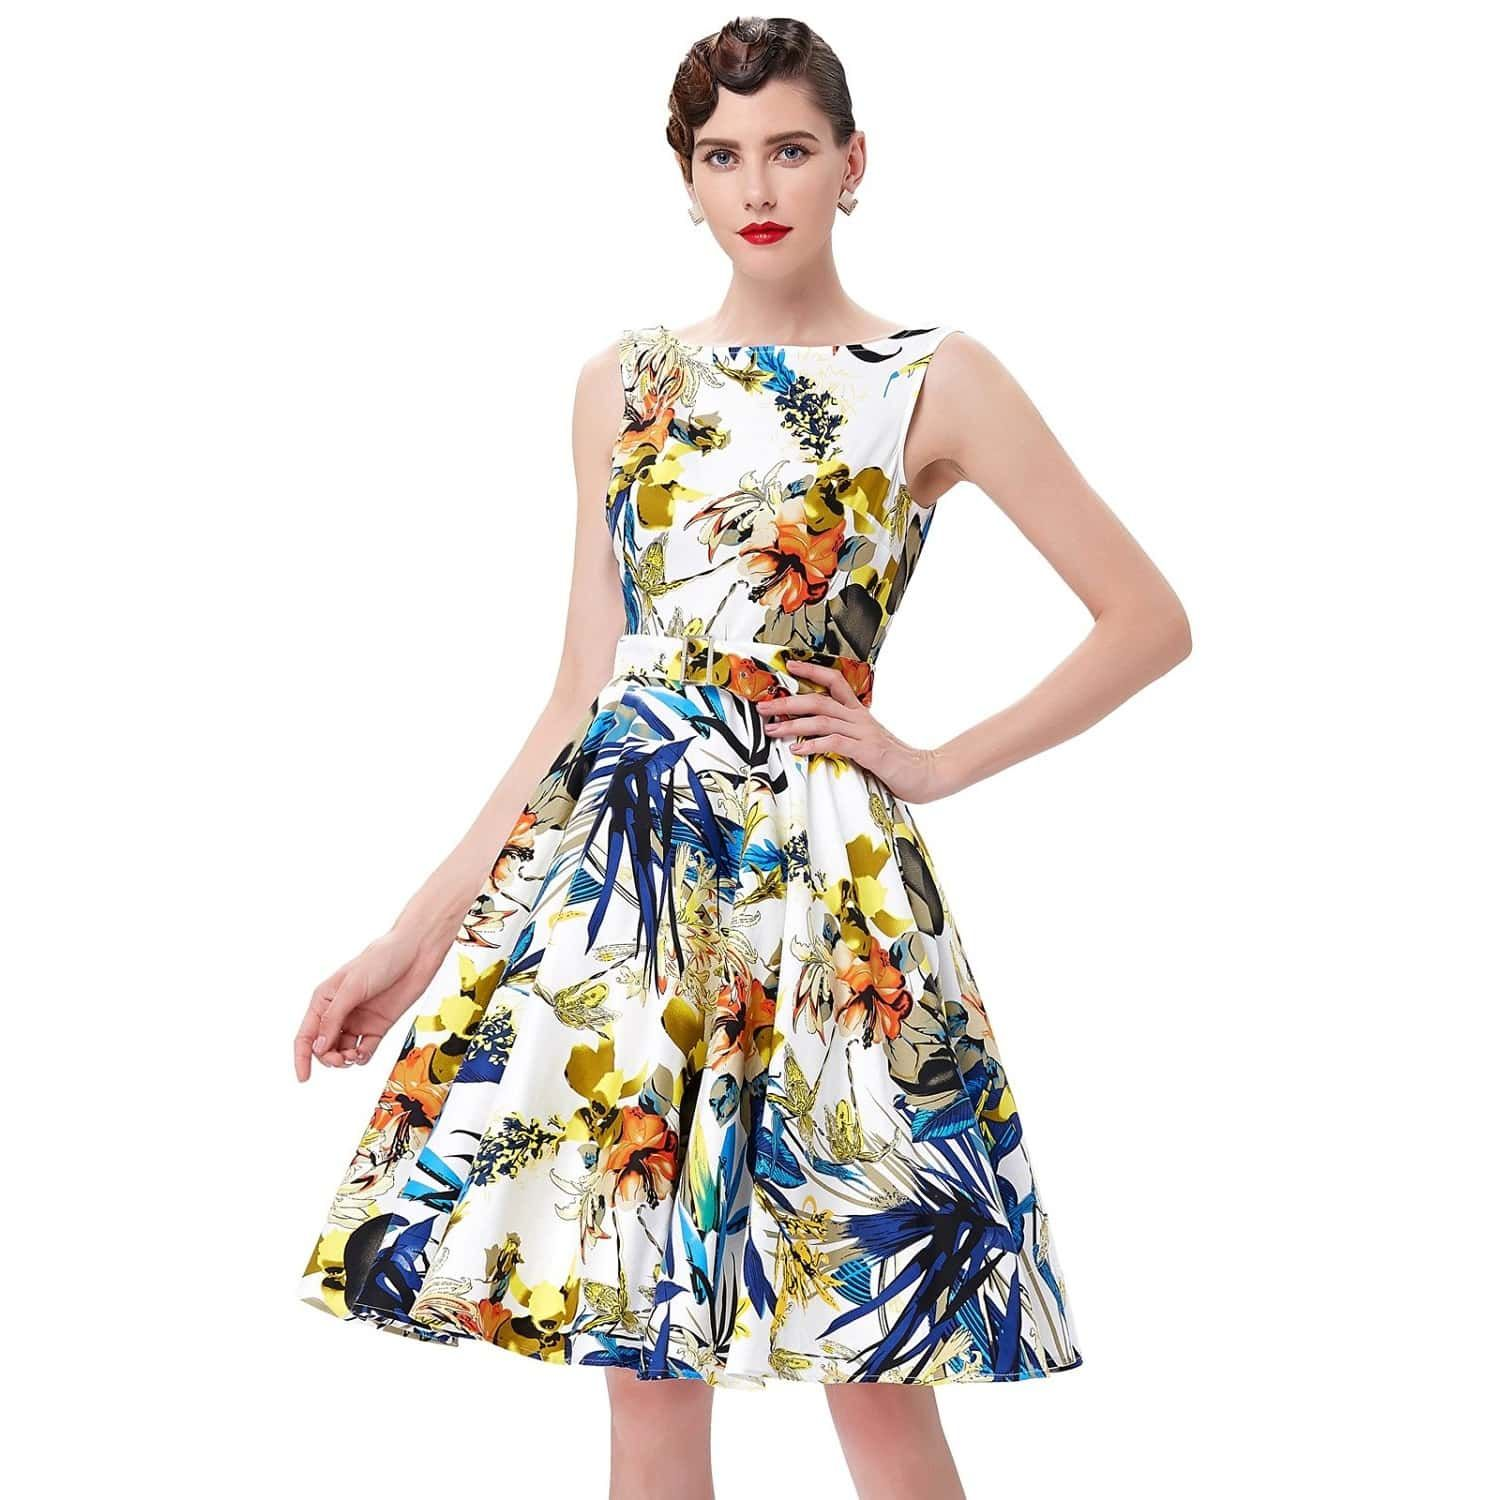 Audrey retro tropical floral swing dress